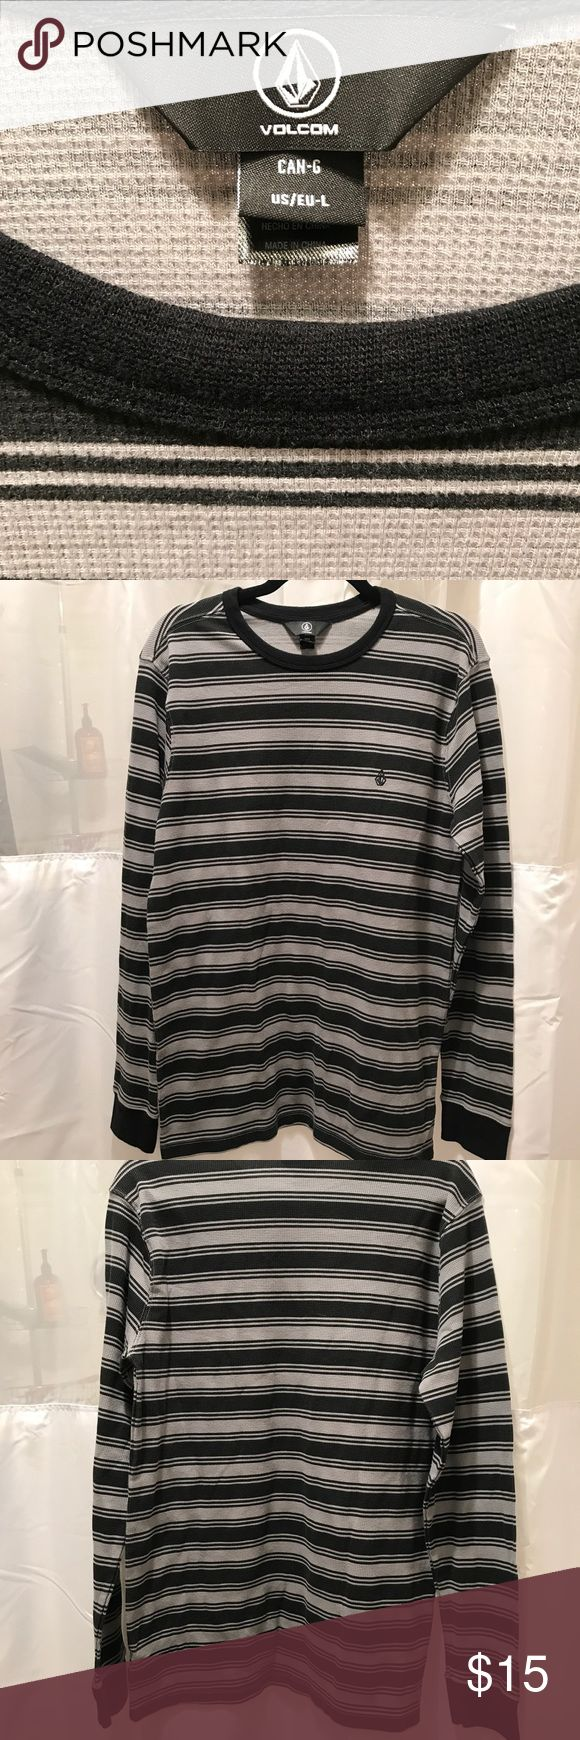 Men's Volcom long-sleeved top. Size Large. NWOT Volcom men's long sleeve top. Size large. Background is gray. Alternating pattern consists of wide and thin horizontal black stripes. Volcom Shirts Tees - Long Sleeve